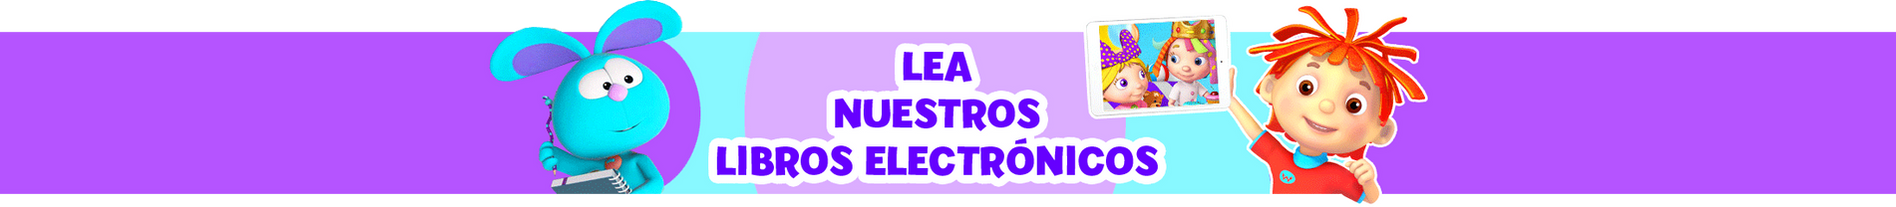 Spanish---Read-Our-eBooks---Banner.png